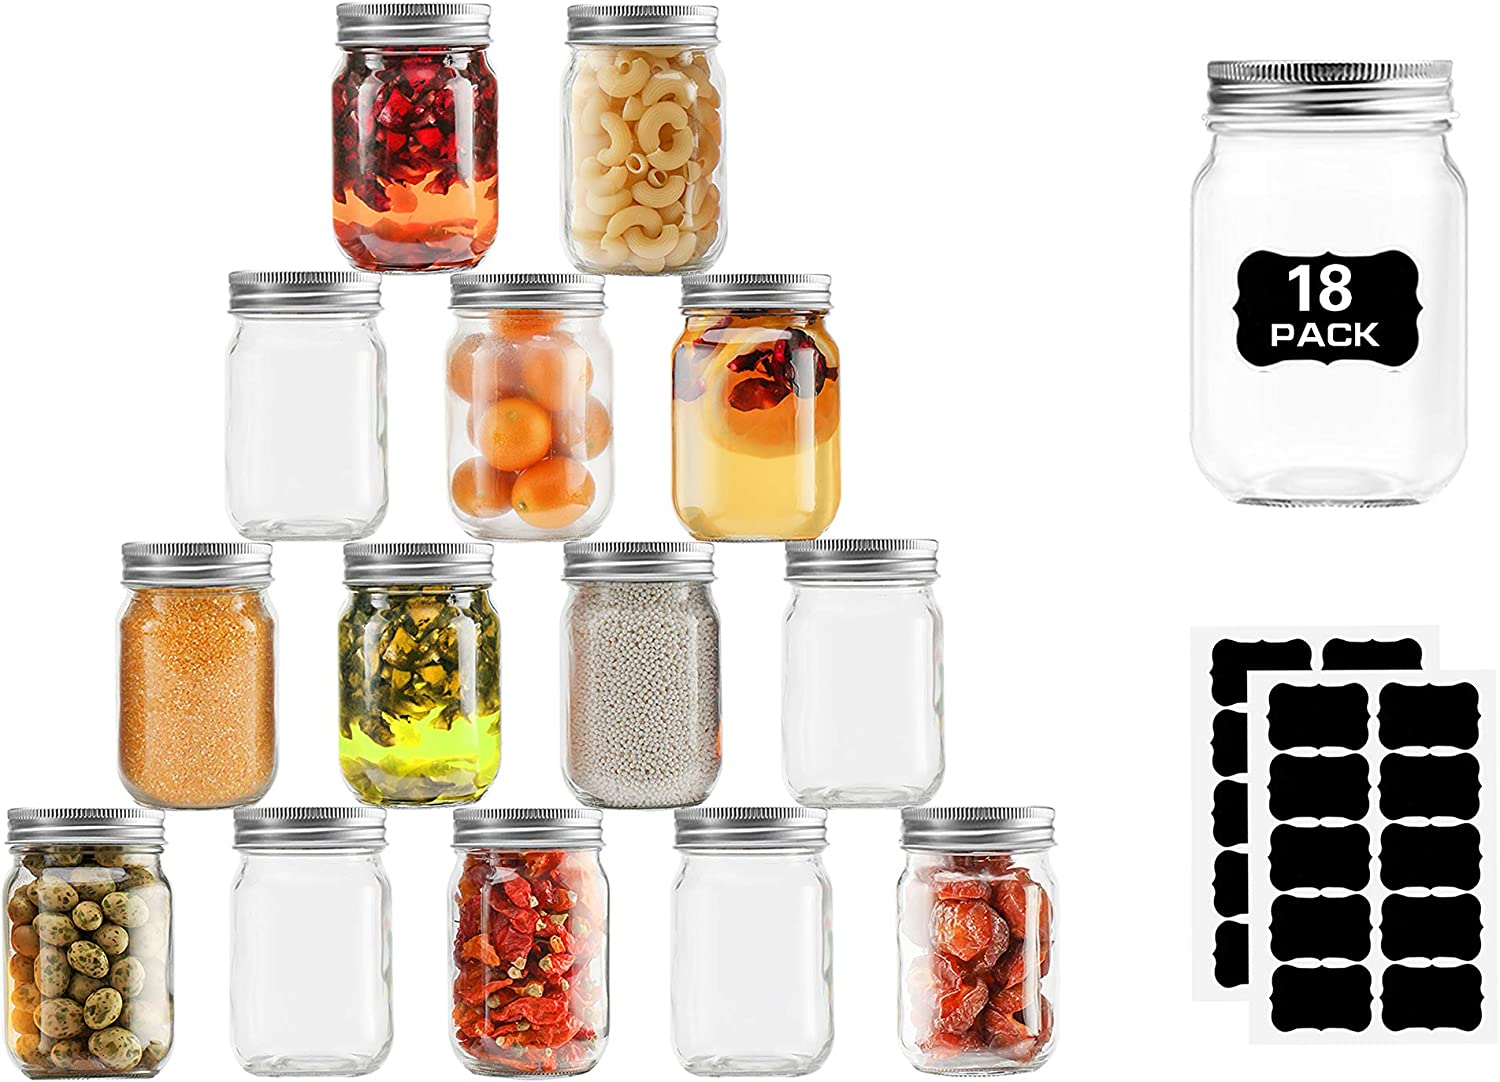 Glass Mason Jars Regular Mouth, 12 Ounce Glass Jars with Silver Metal Lids for Meal Prep, Food Storage, Canning, Drinking, for Overnight Oats, Jelly, Dry Food, Salads, Yogurt (18 Pack) With 20 Labels